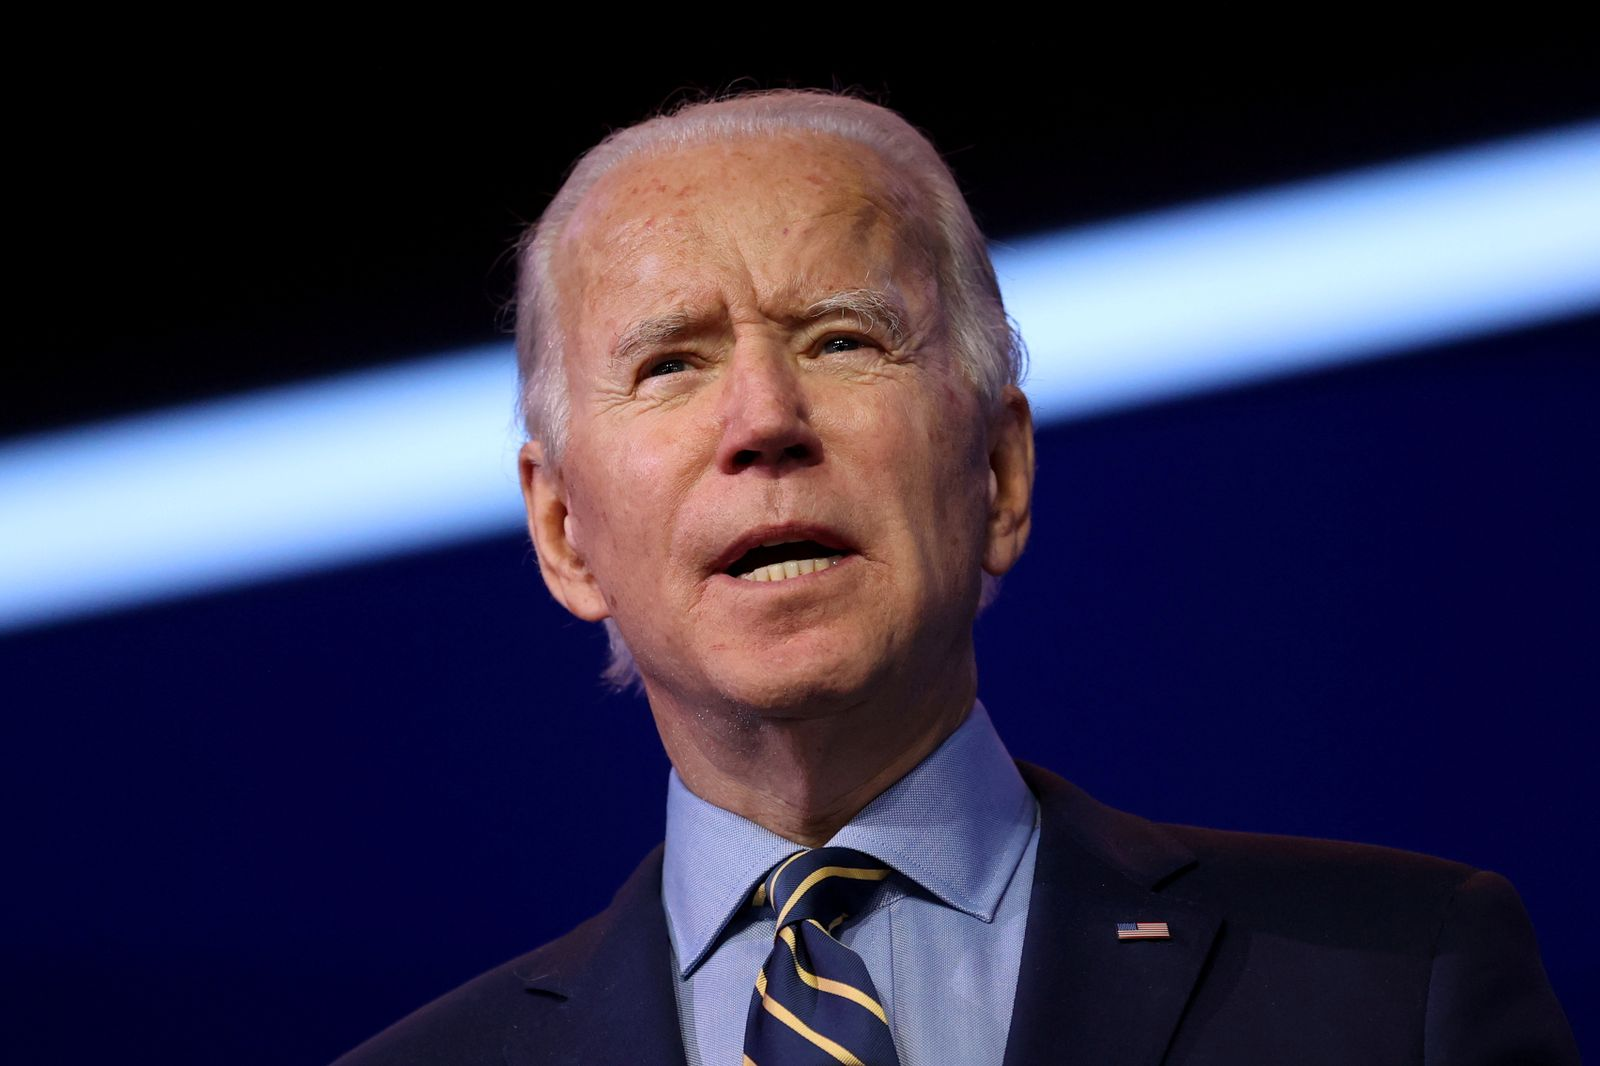 FILE PHOTO: U.S. President-elect Biden delivers remarks at his transition headquarters in Wilmington, Delaware